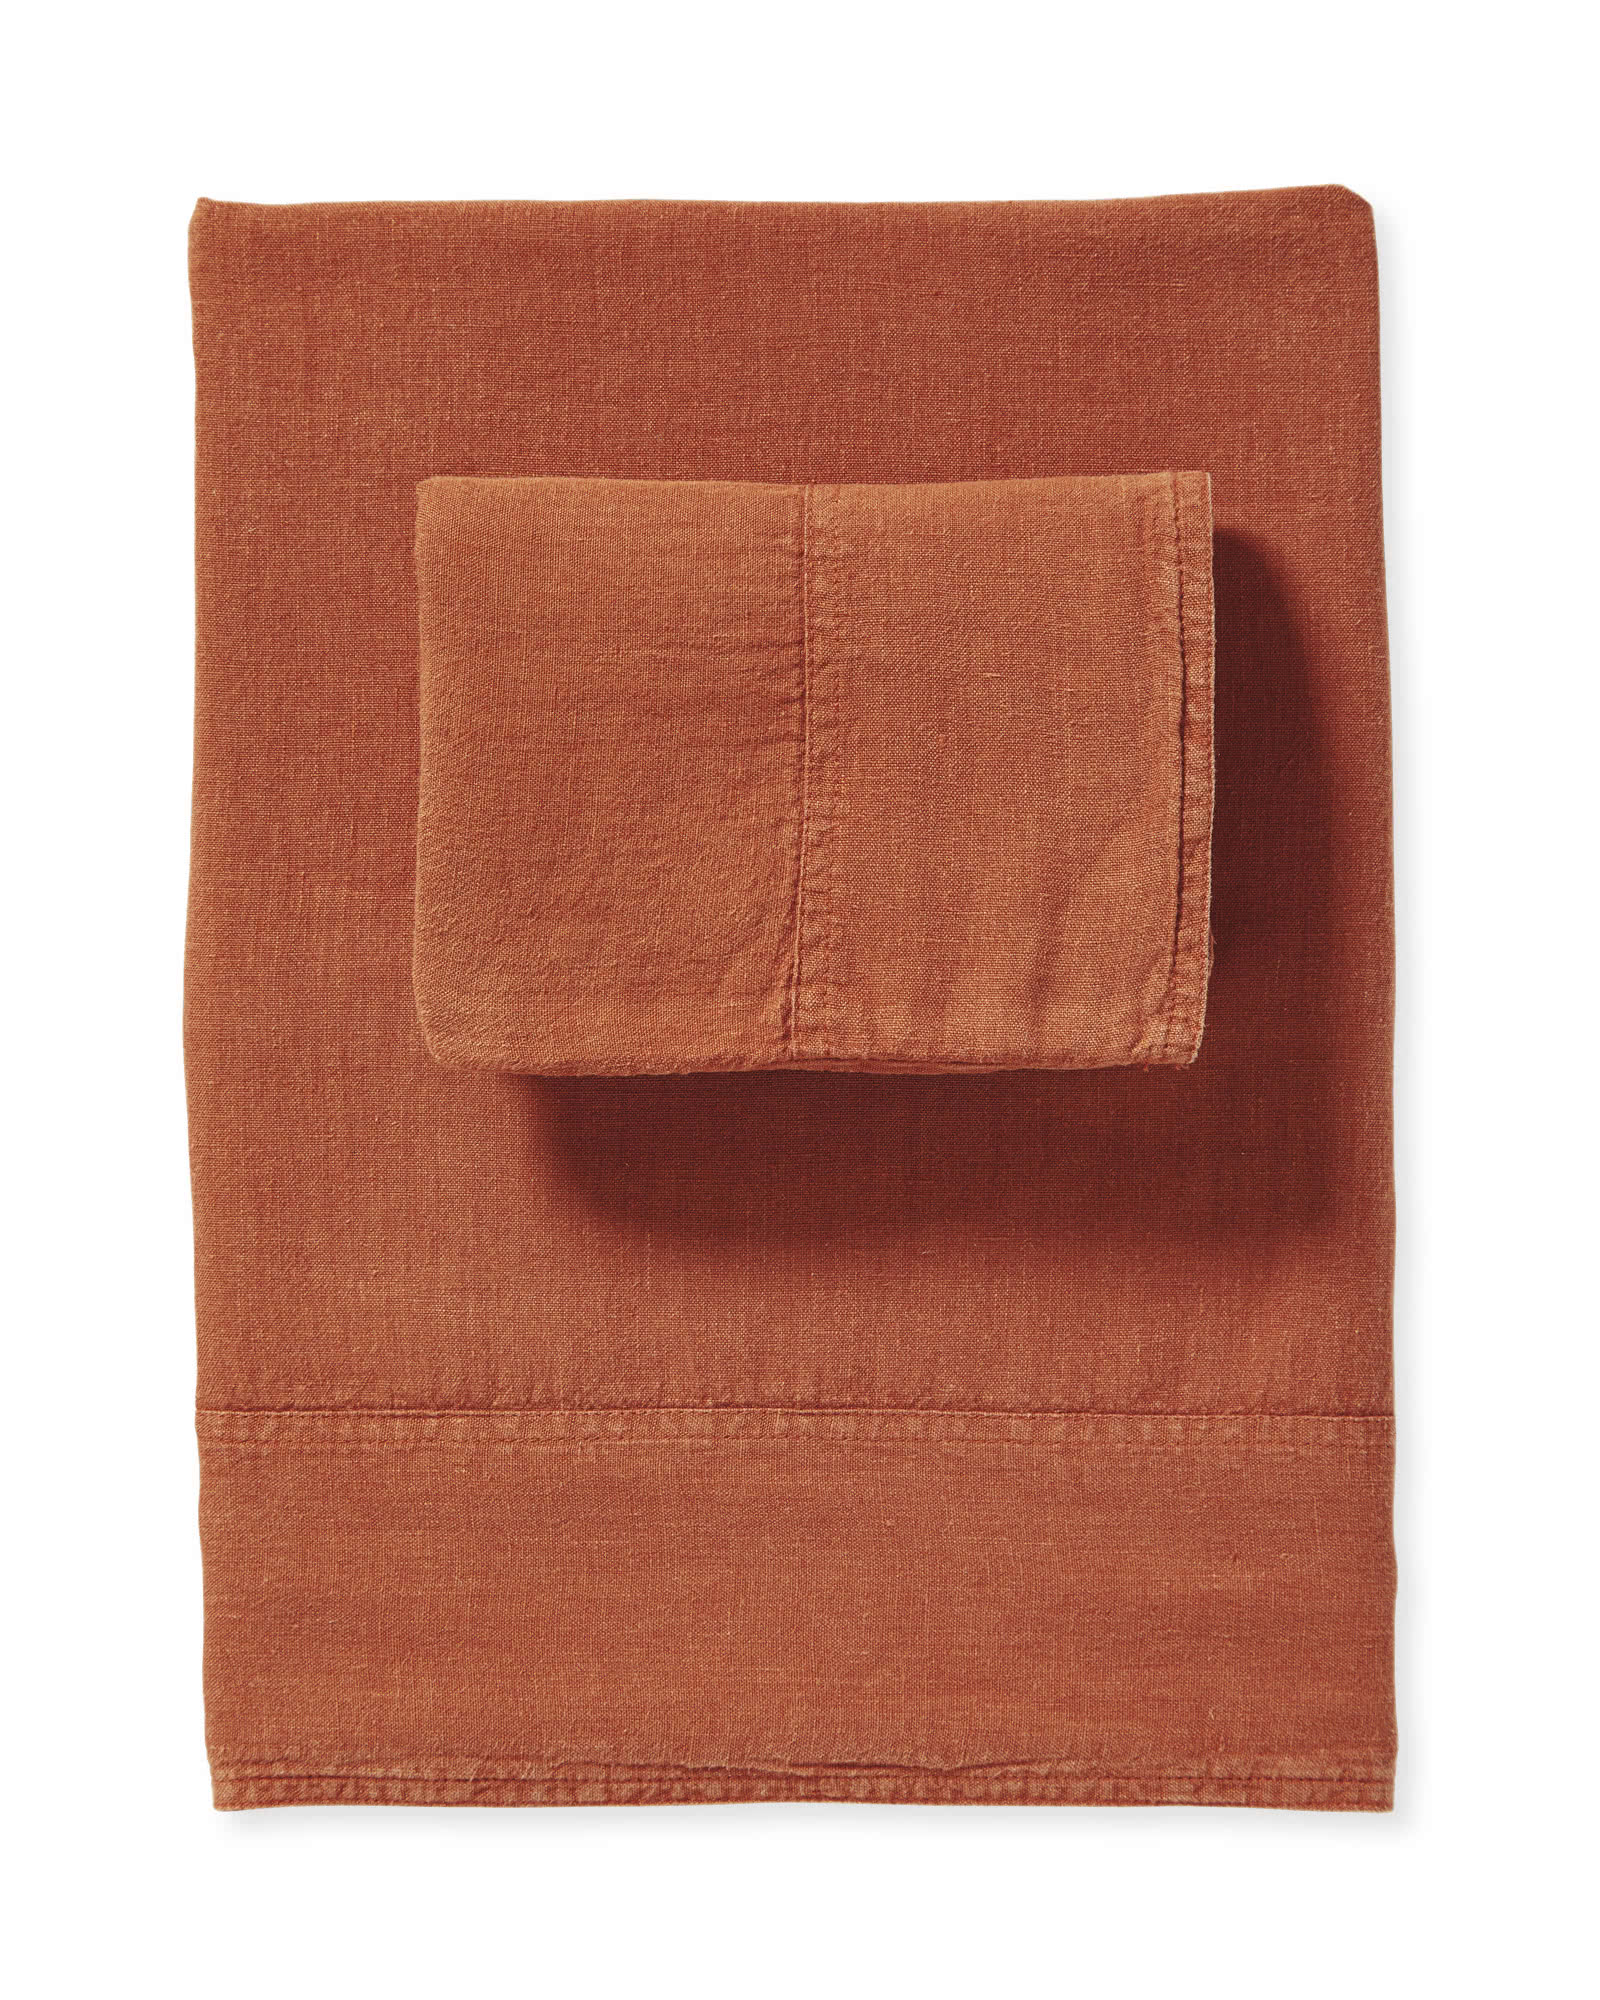 Positano Linen Sheet Set, Terracotta